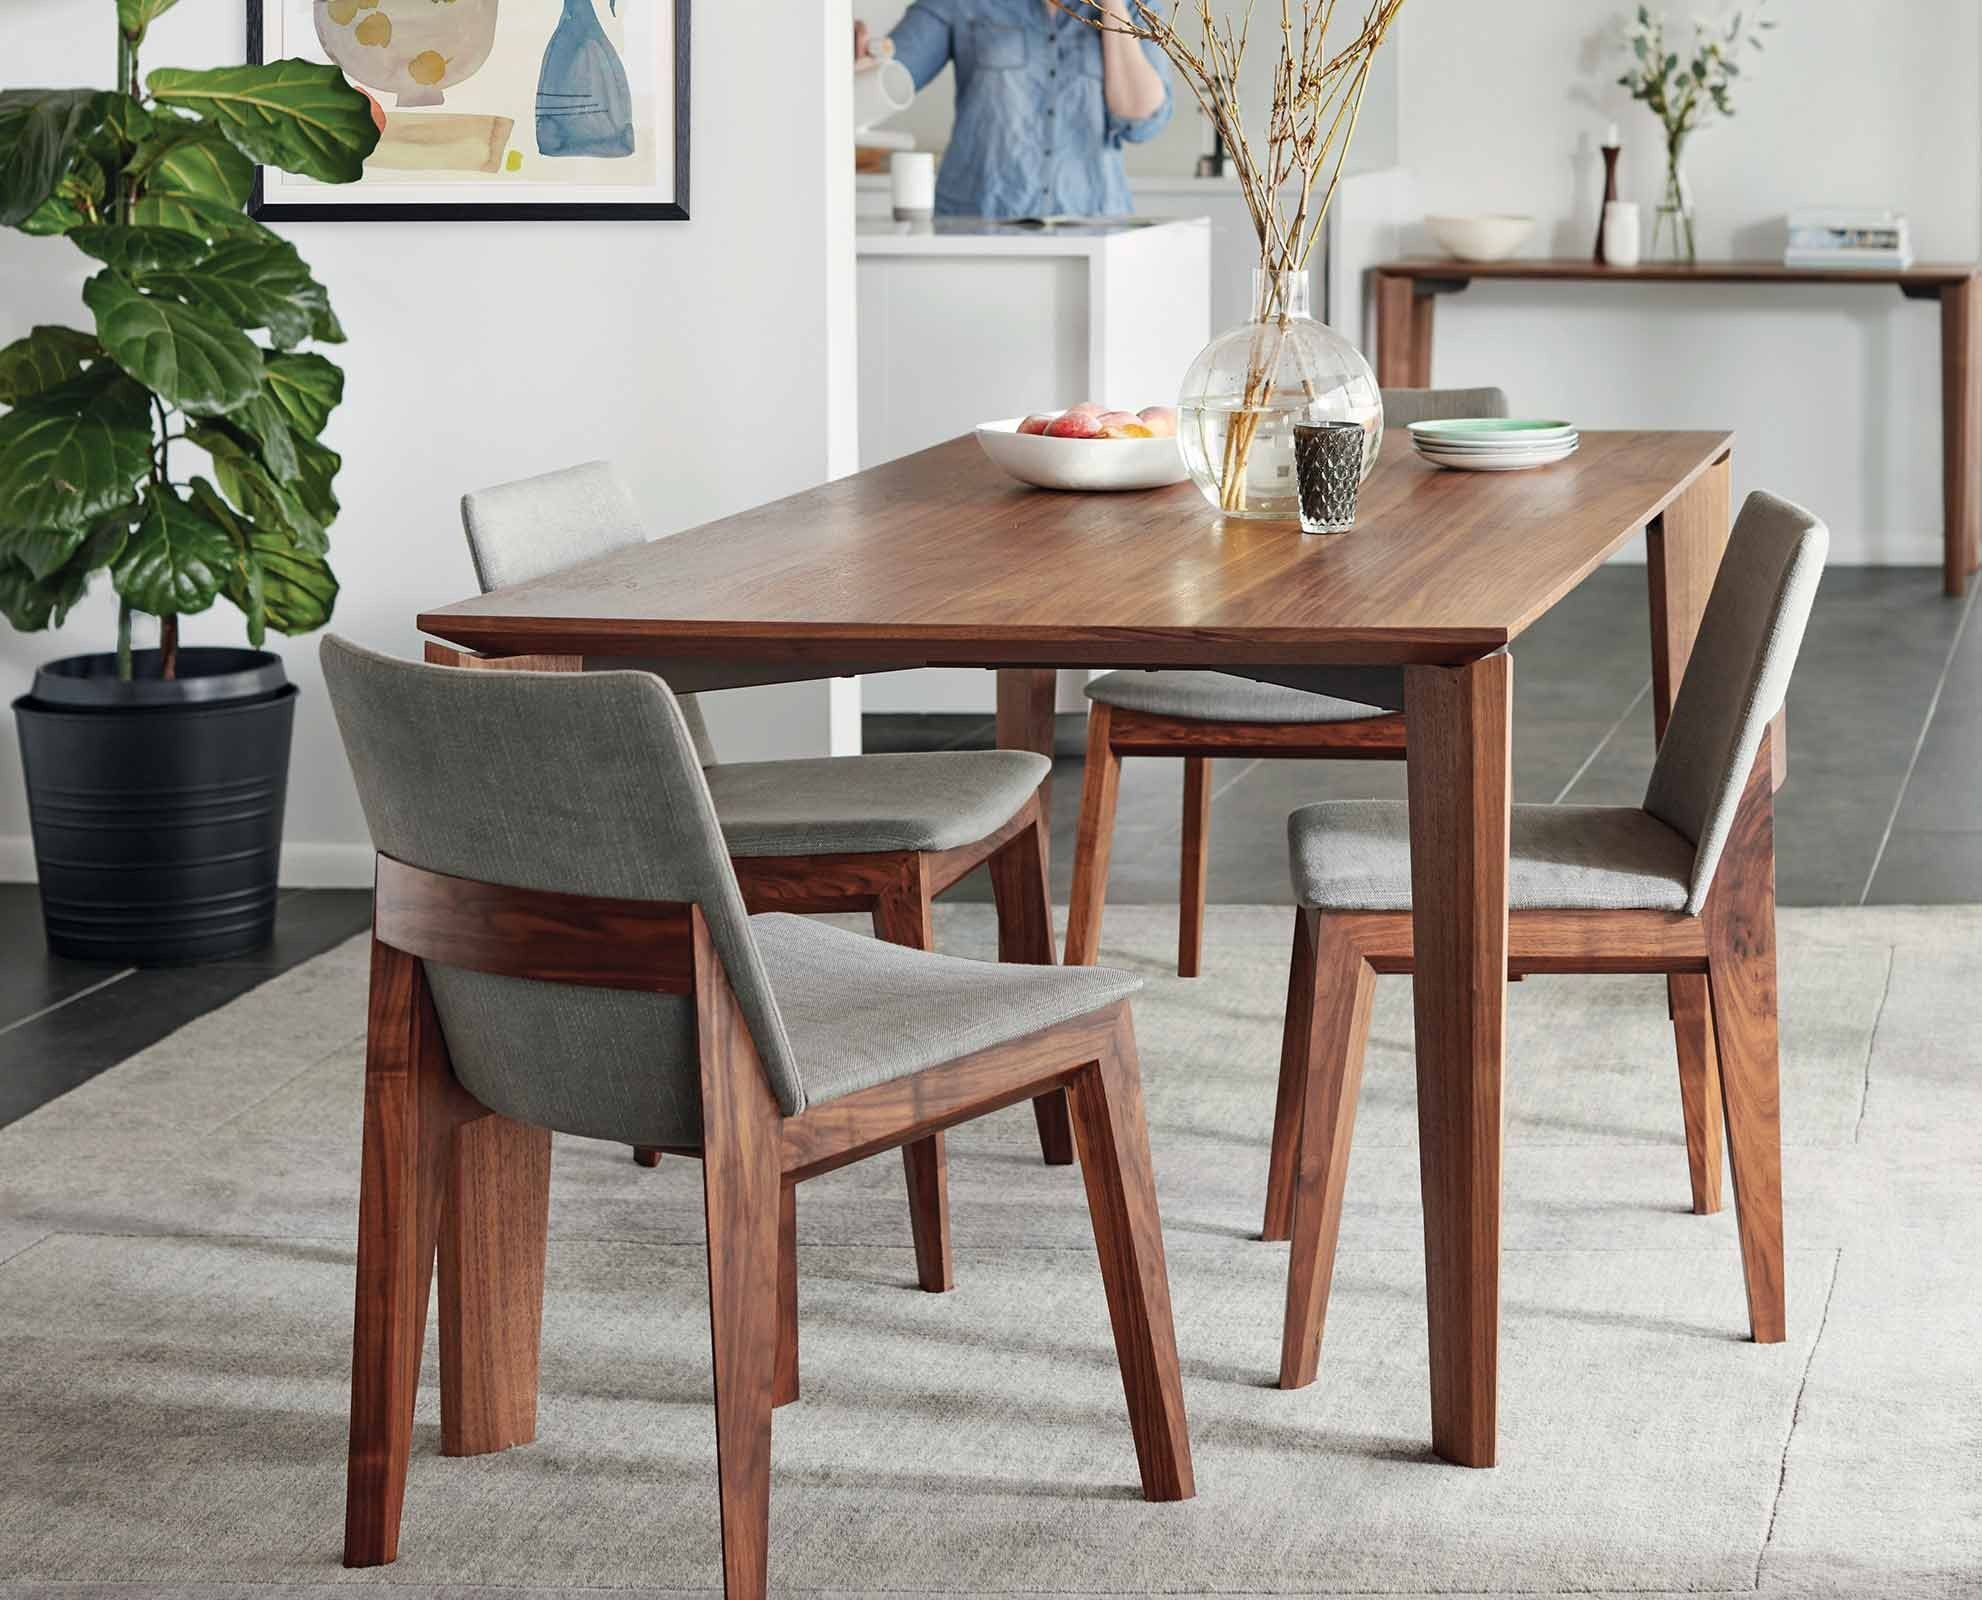 Vidare Dining Table Scandis Scandinavian Dining Room Minimalist Dining Room Scandinavian Dining Table